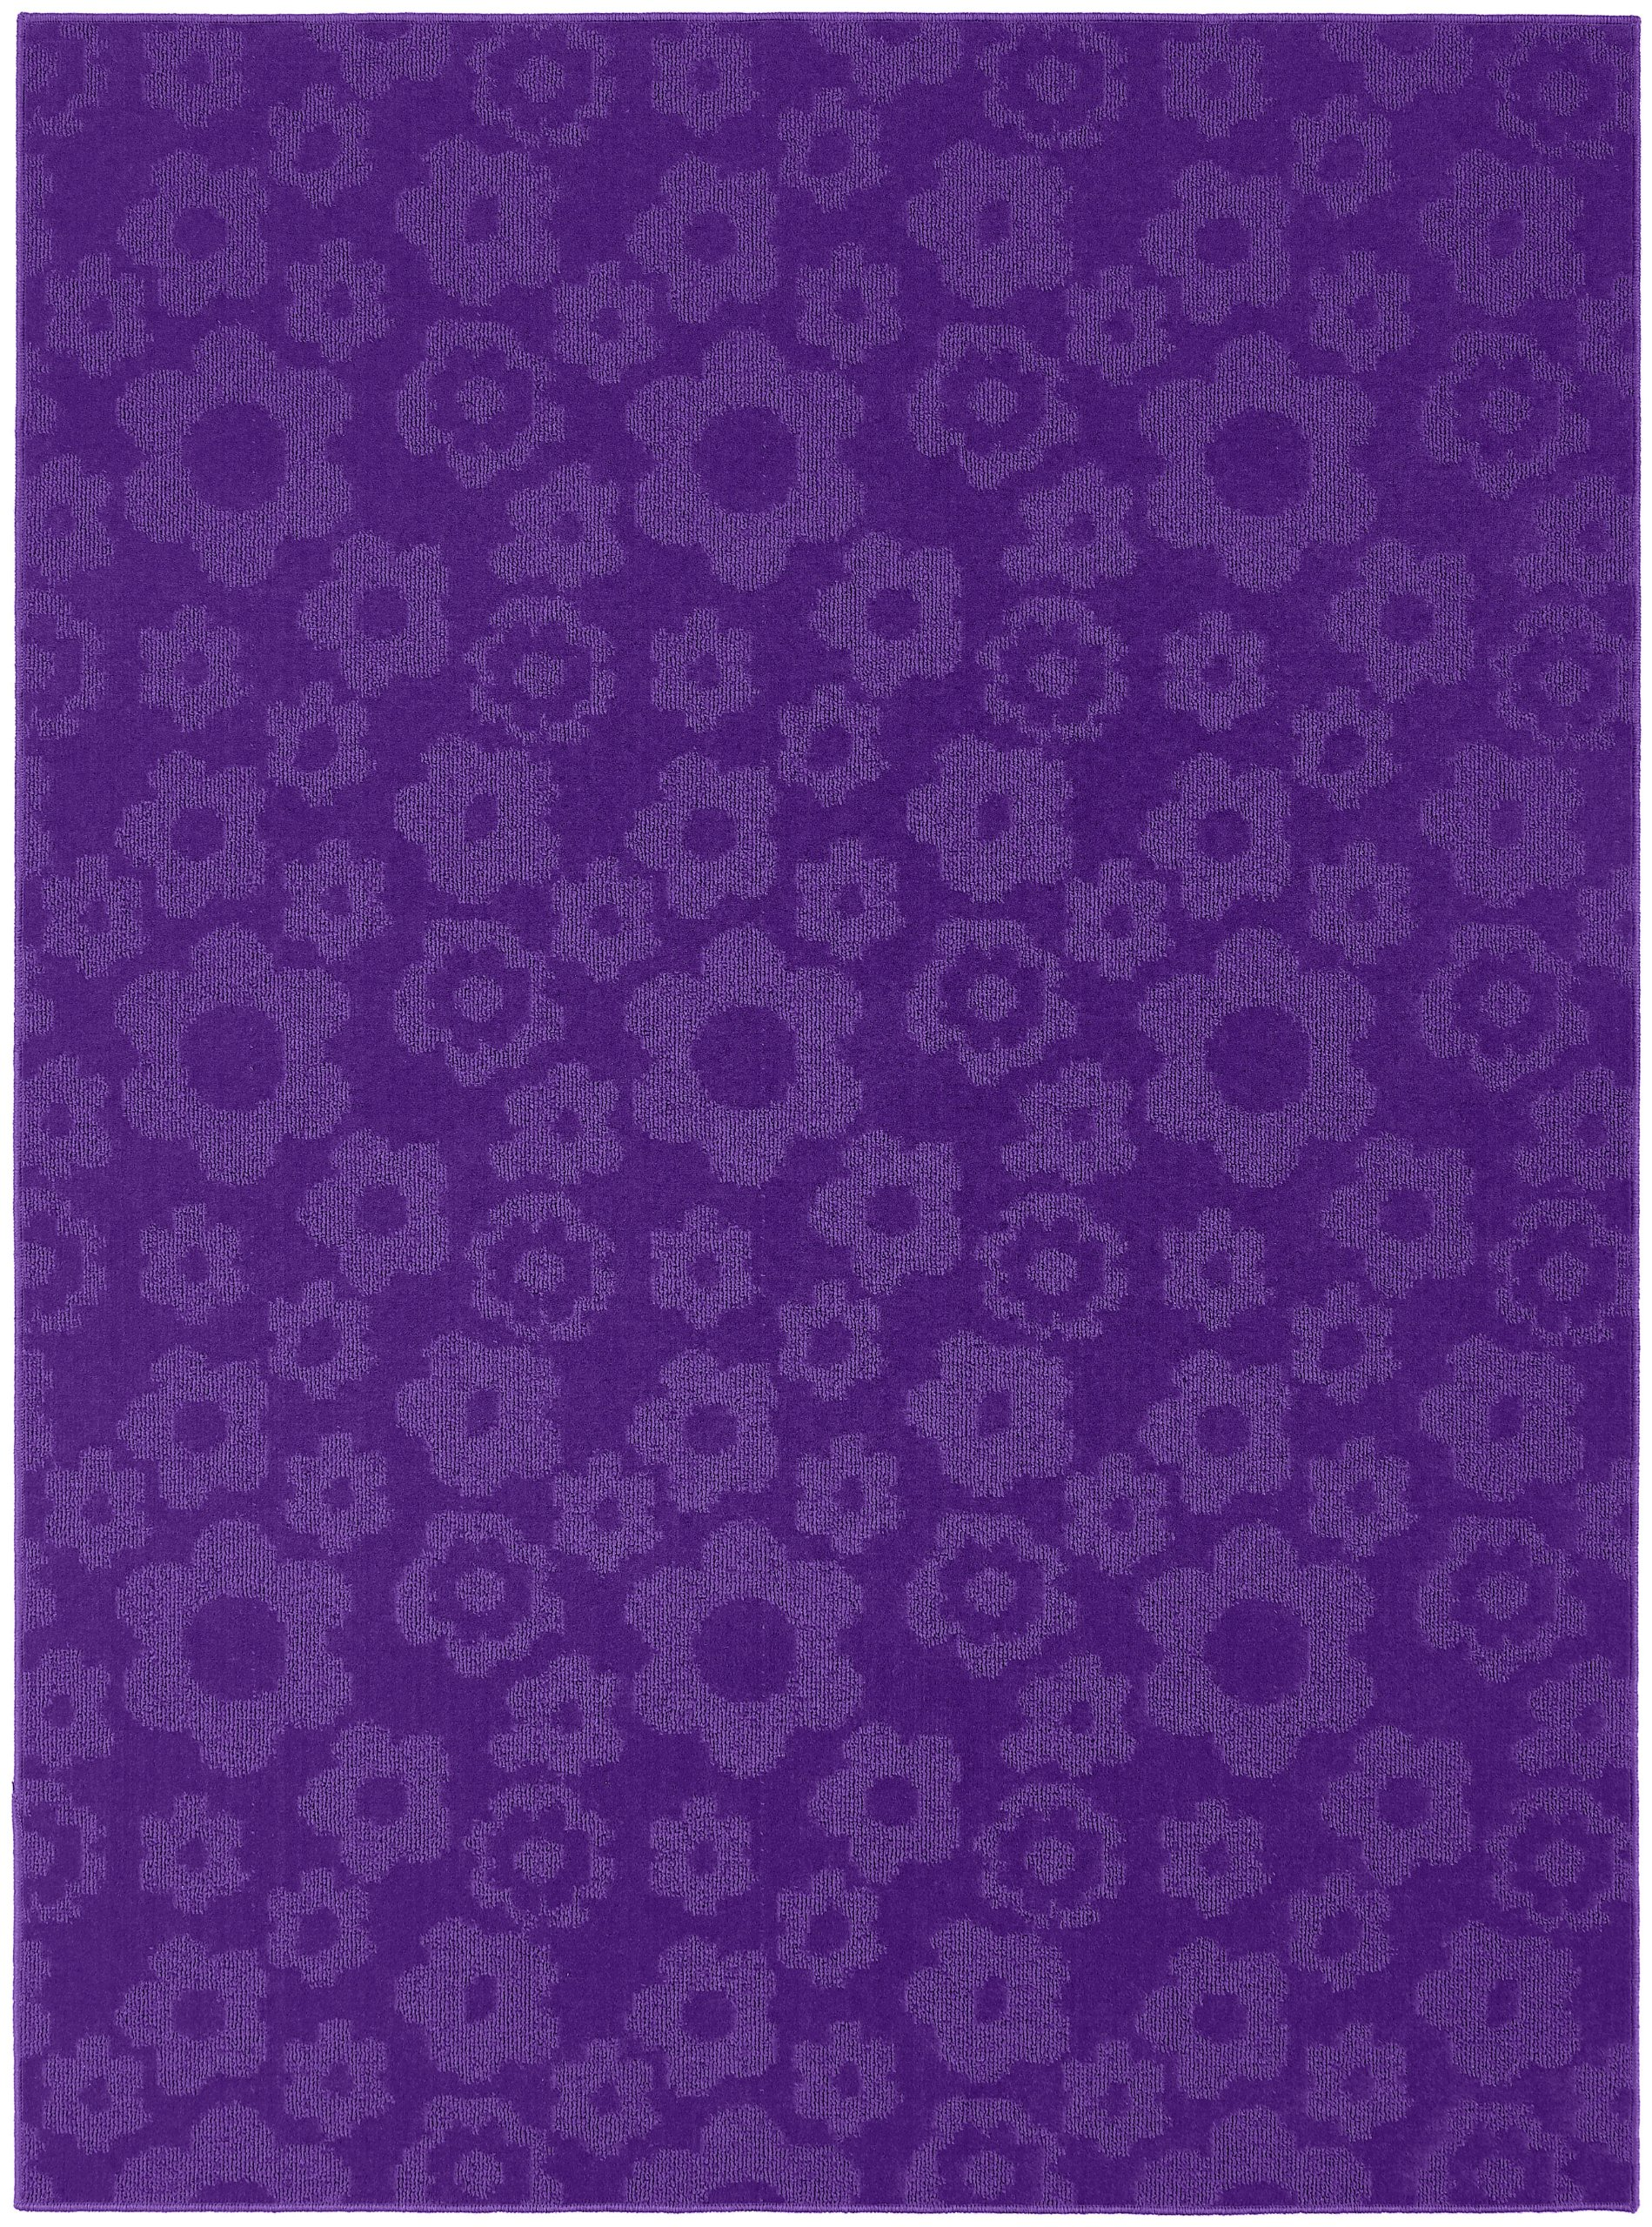 Garland Rug Flowers Area Rug, 5-Feet by 7-Feet, Purple